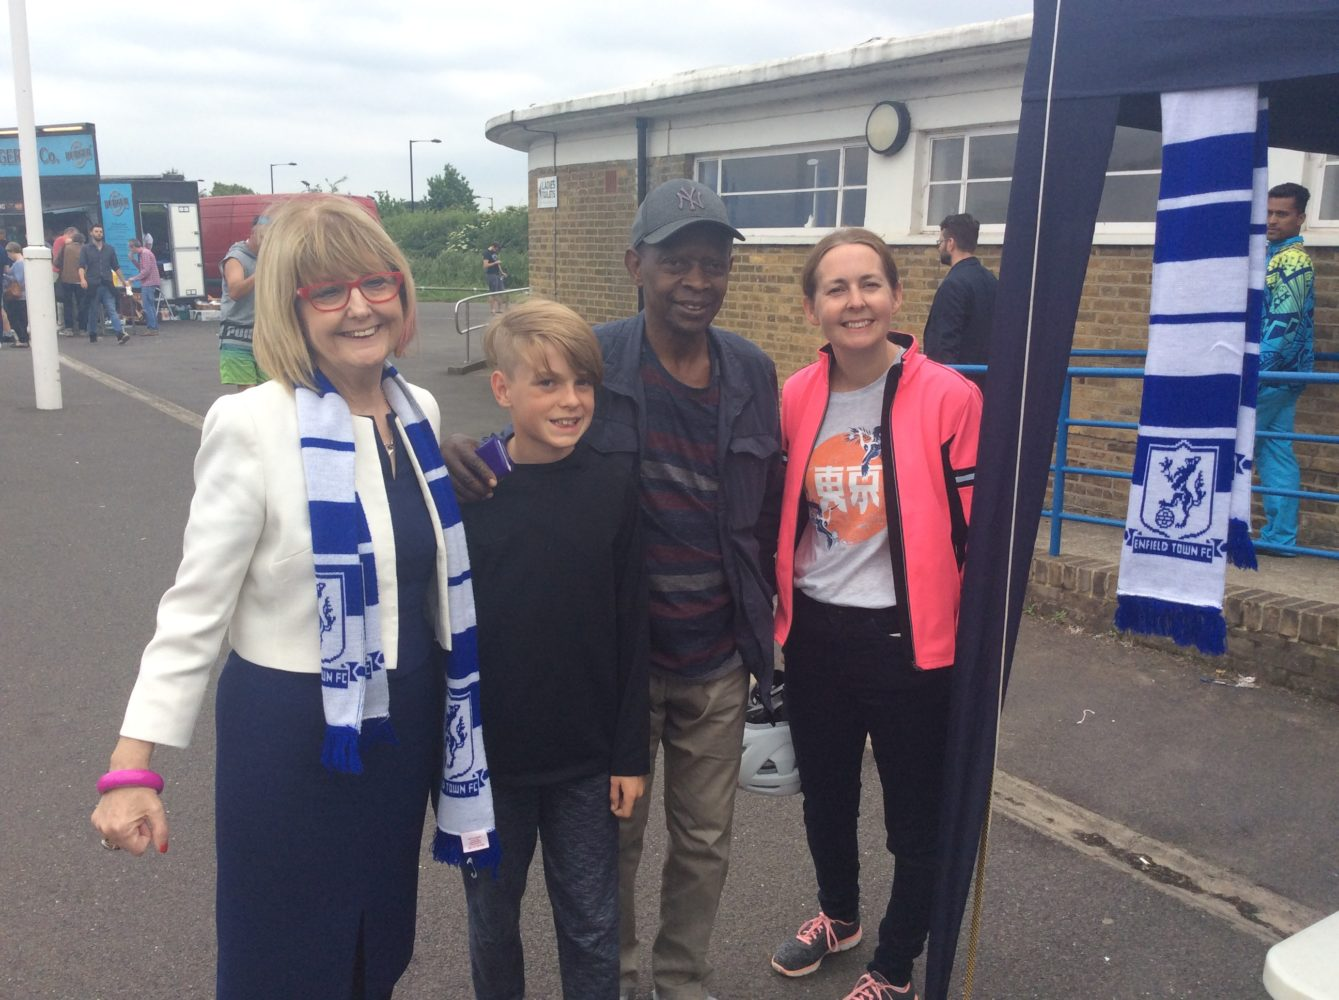 Former mayor Christine Hamilton at Enfield Town's Queen Elizabeth II Stadium